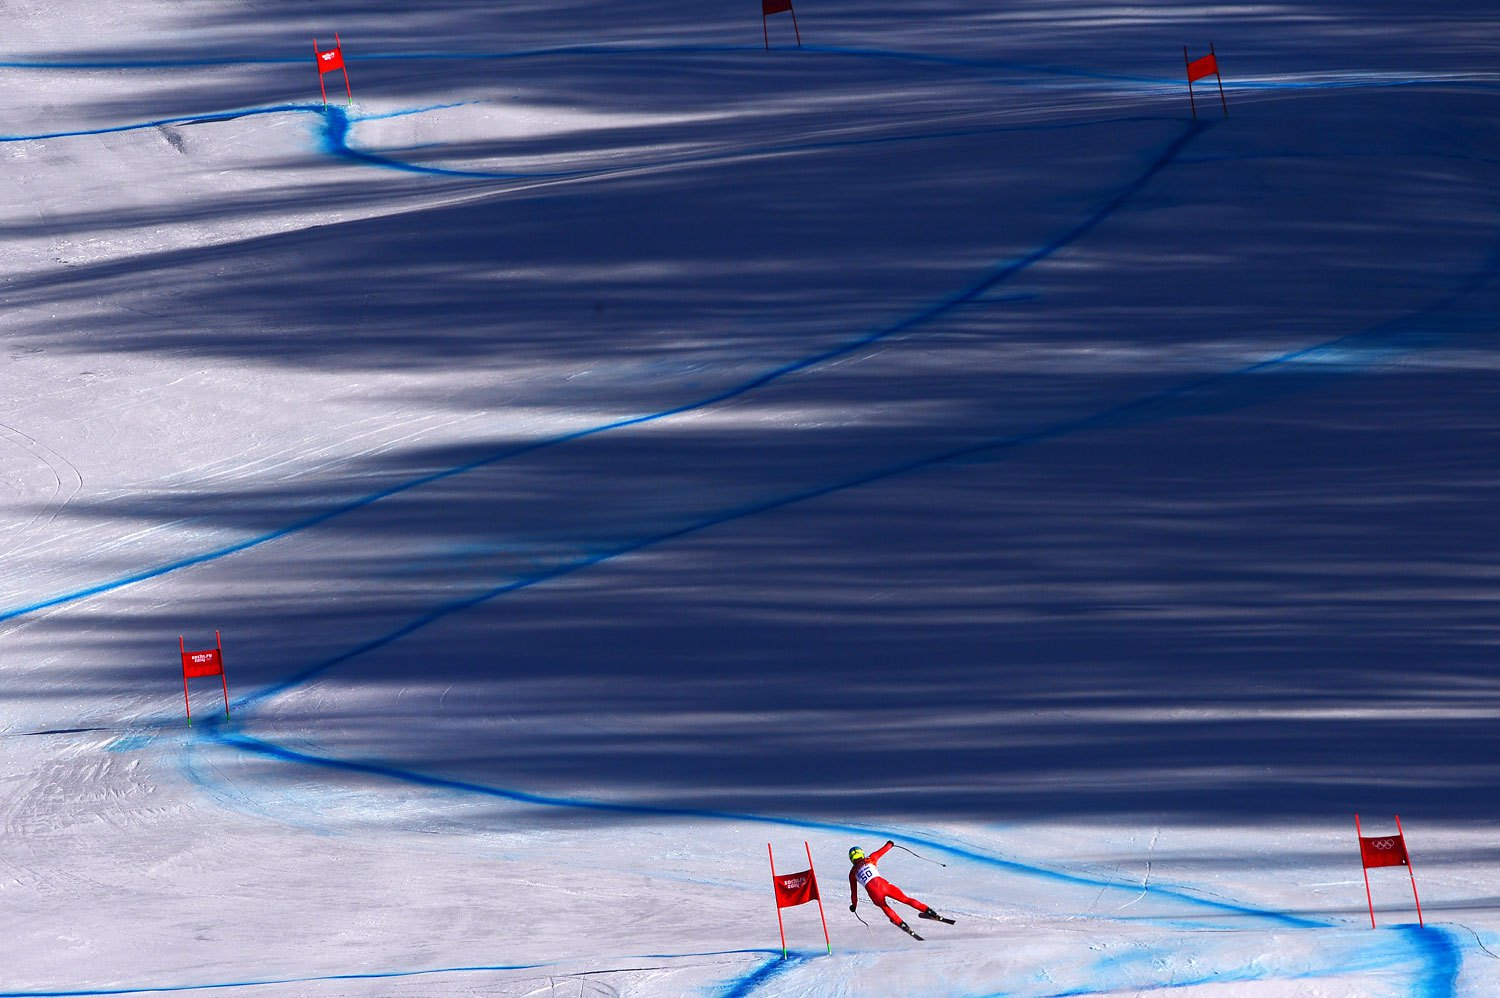 Denmark's Christoffer Faarup takes part in a Men's Alpine Skiing Downhill training session at the Rosa Khutor Alpine Center on Feb. 8, 2014